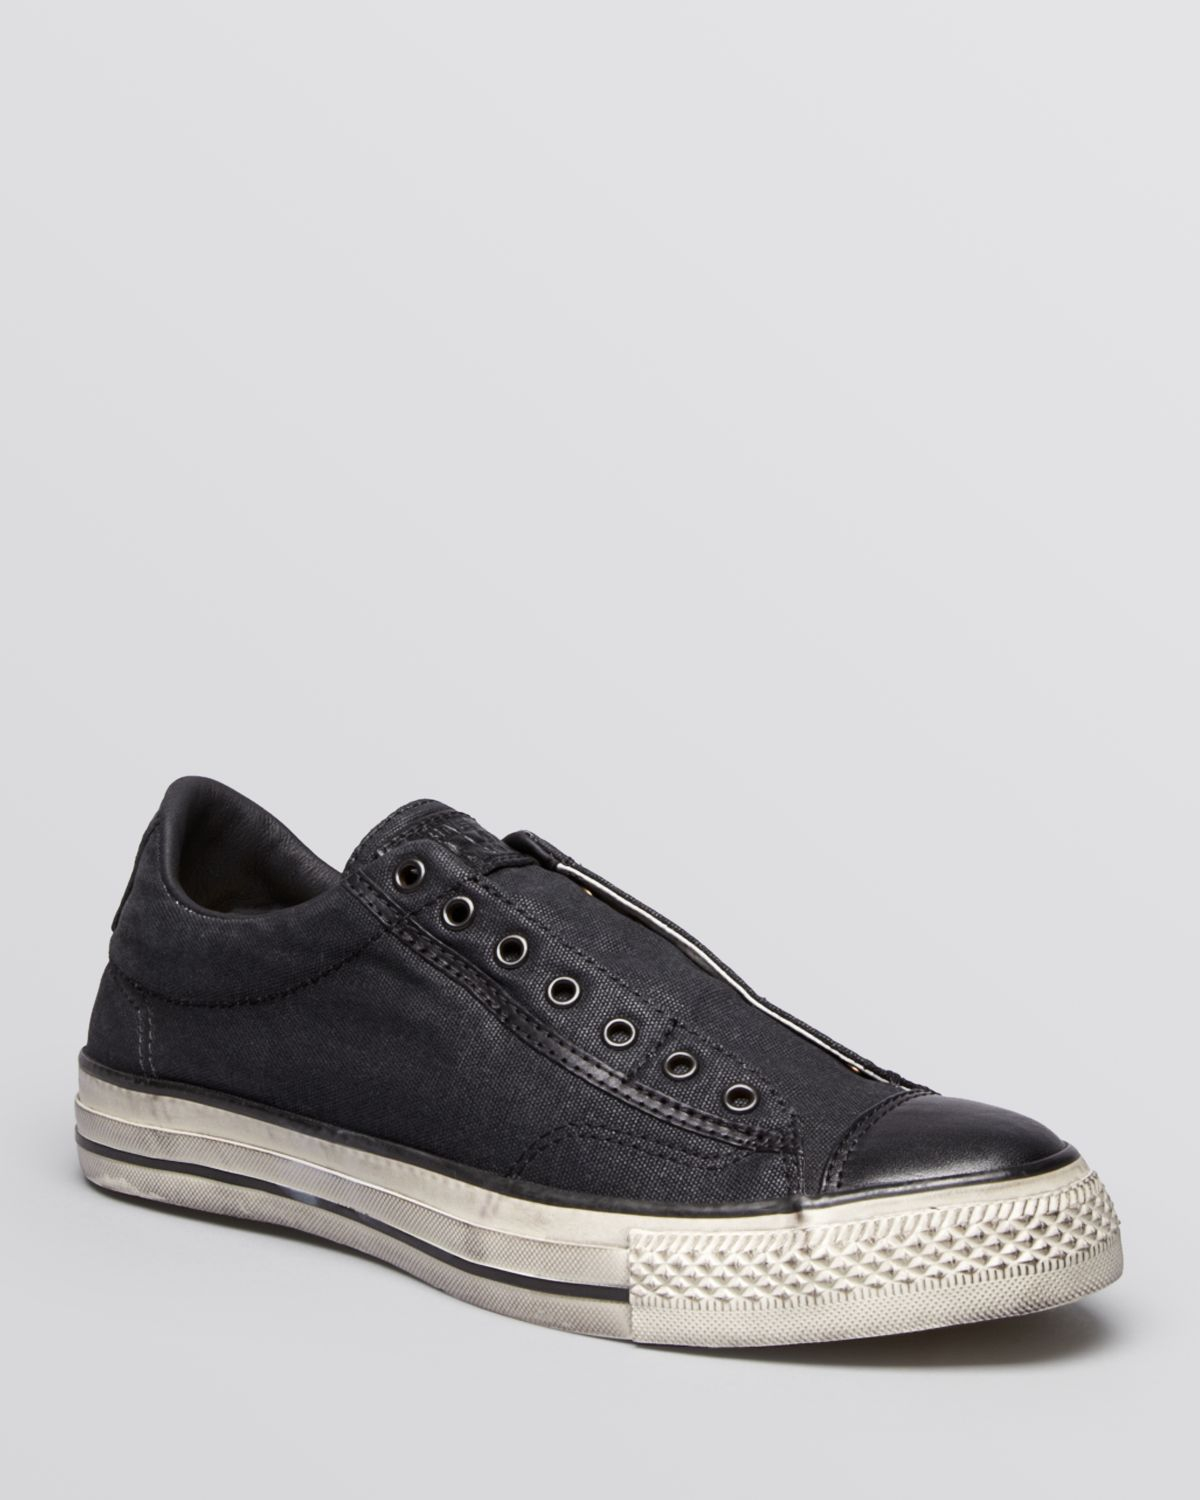 95d7b7139e3 Gallery. Previously sold at  Bloomingdale s · Men s John Varvatos Converse  ...